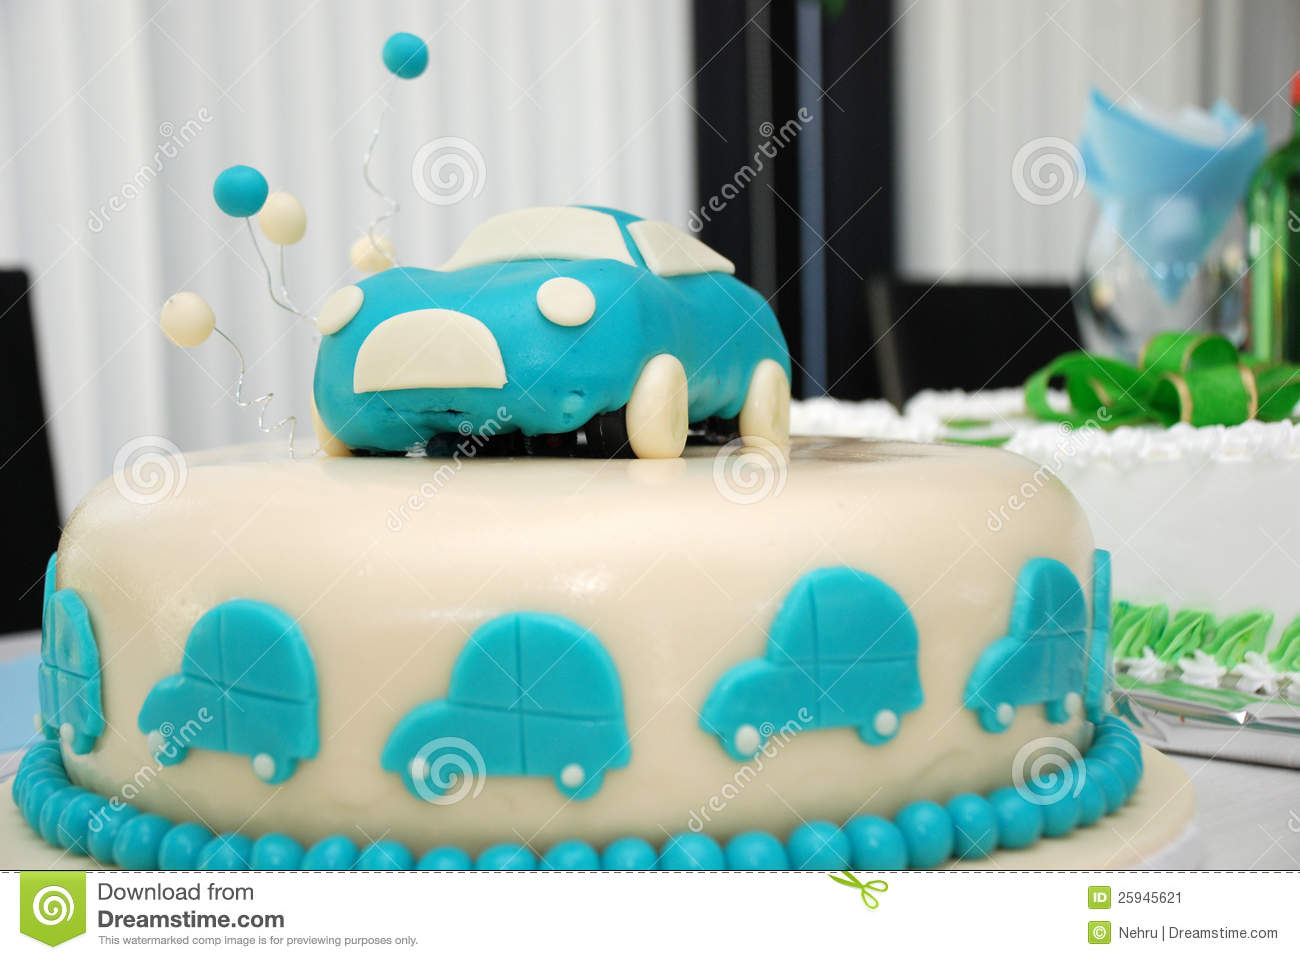 The barbie cake is designed to thrill. Baby Boy Blue Birthday Cake With Car Stock Image Image Of Candle Cake 25945621